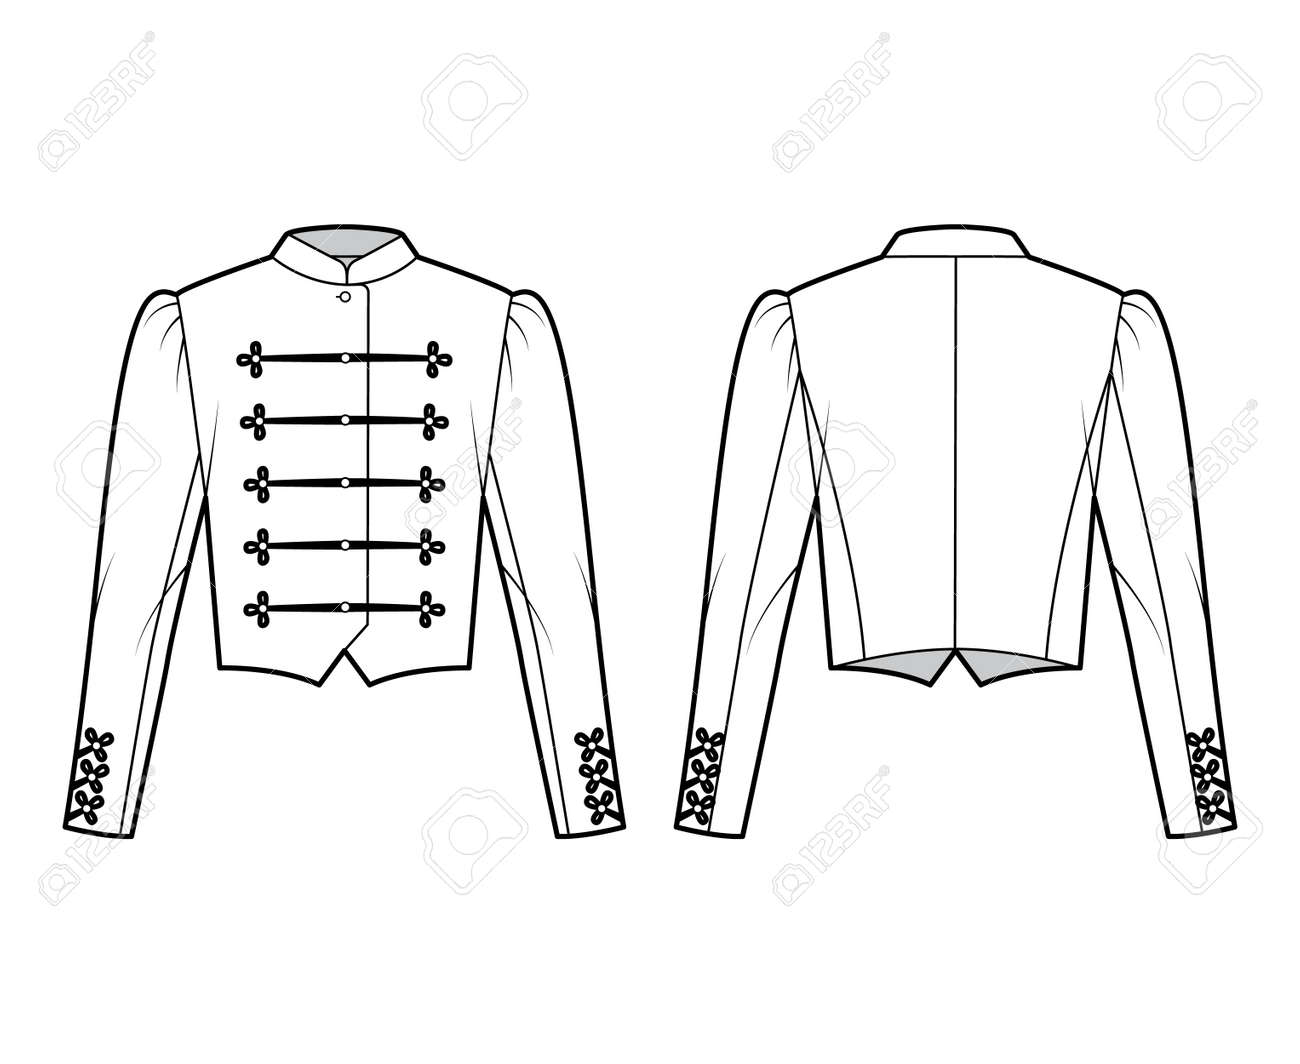 Majorette jacket technical fashion illustration with crop length, long leg o Mutton sleeves, stand collar, button frog closure. Flat blazer template front, back white color style. Women men CAD mockup - 166844729